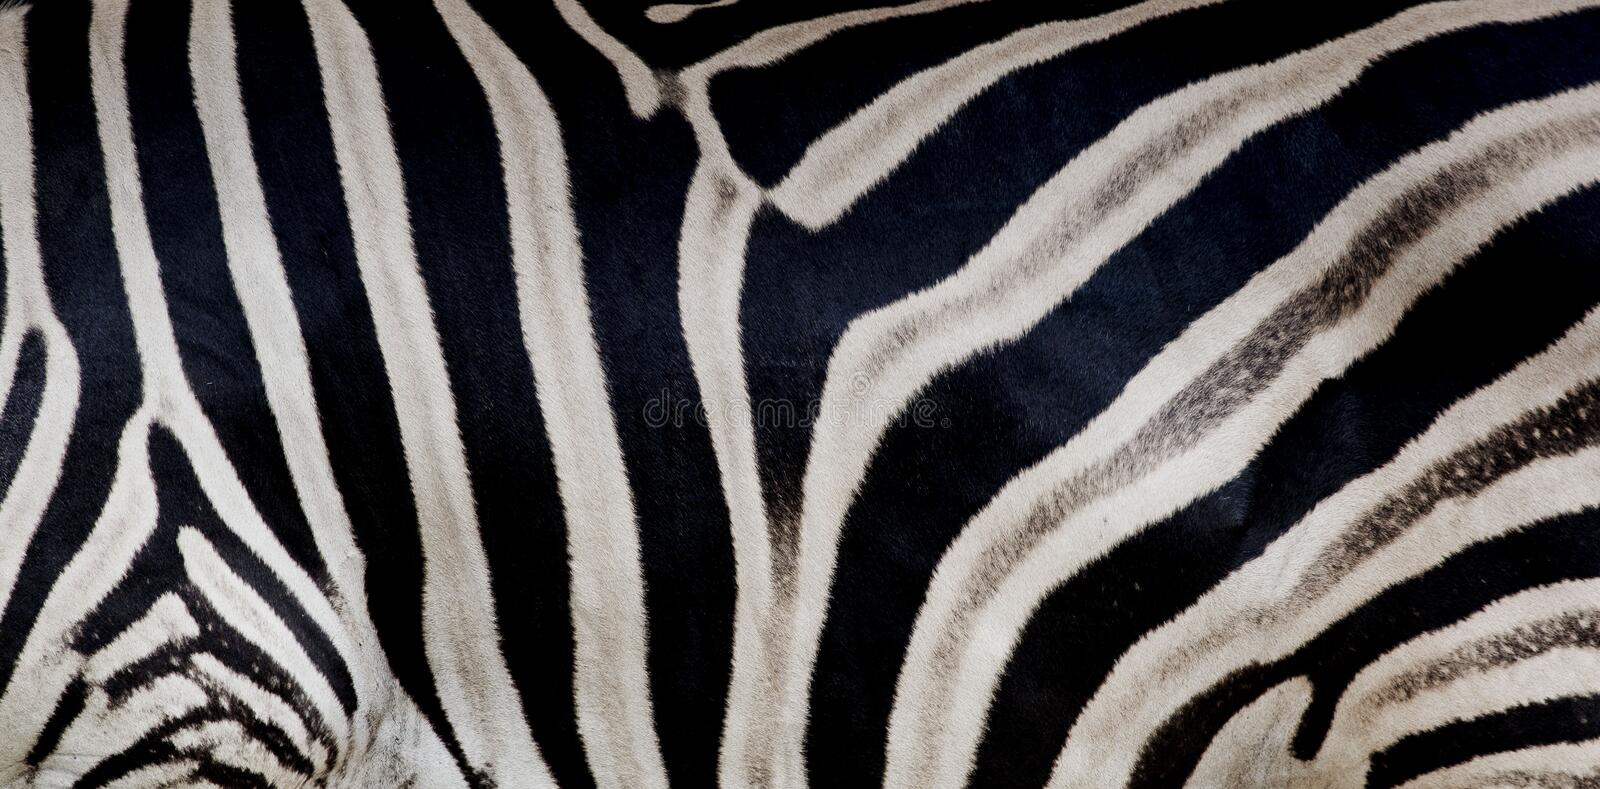 Zebra print, animal skin, tiger stripes, abstract pattern, line. Background, fabric. Amazing hand drawn illustration. Poster, banner. Black and white artwork stock images